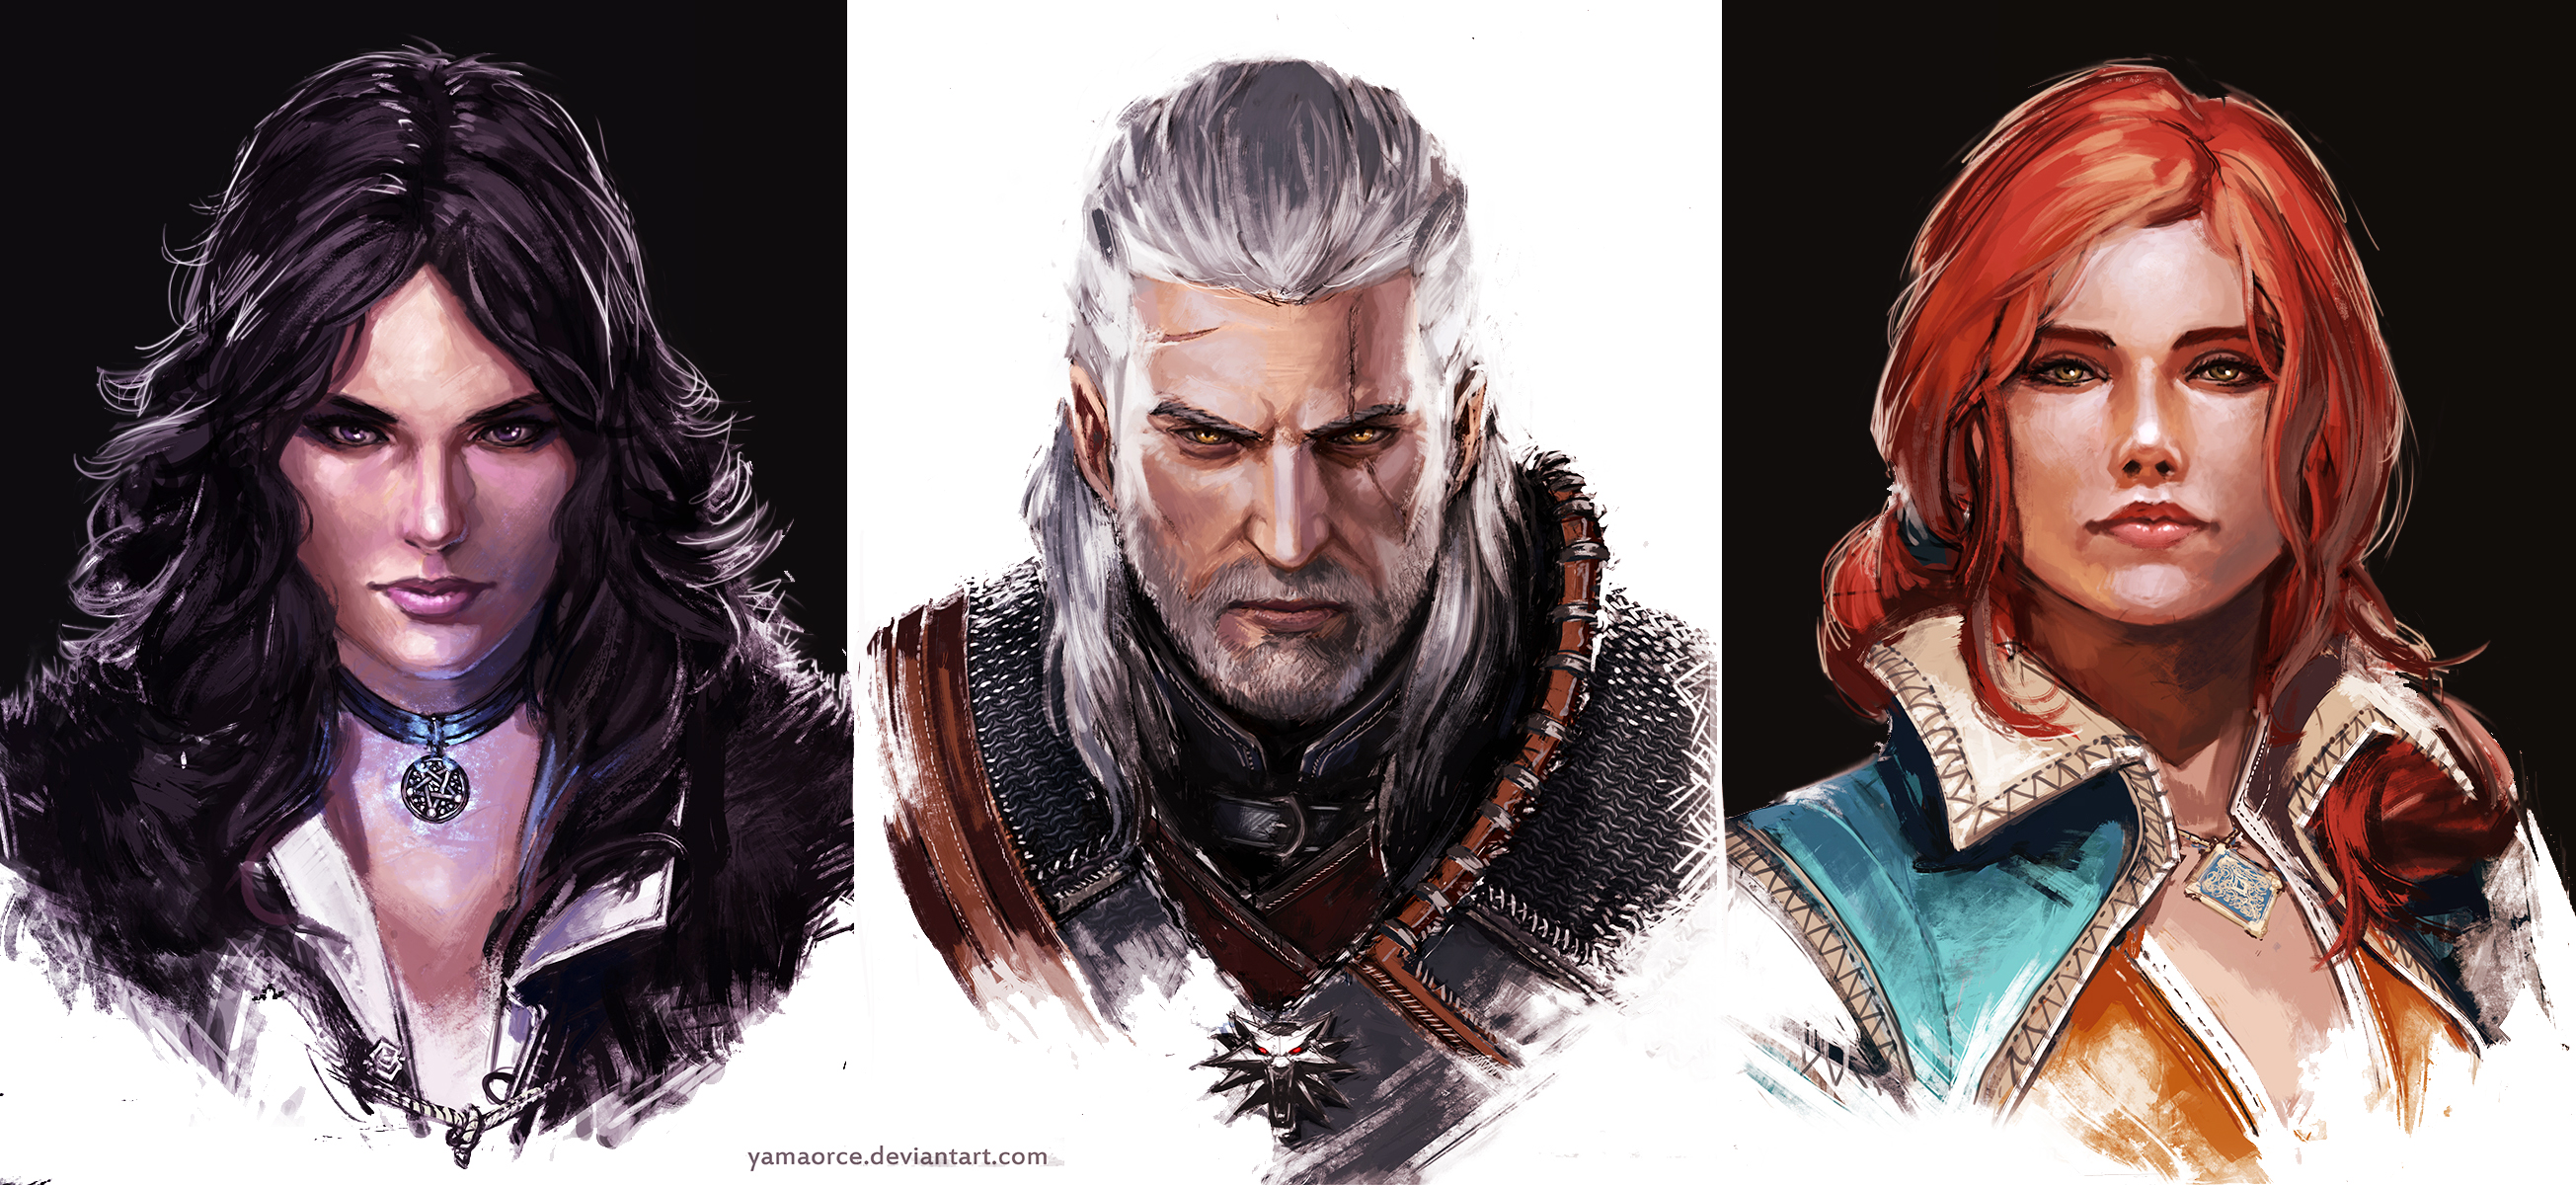 the_witcher_portraits_by_yamaorce-d8p2zz